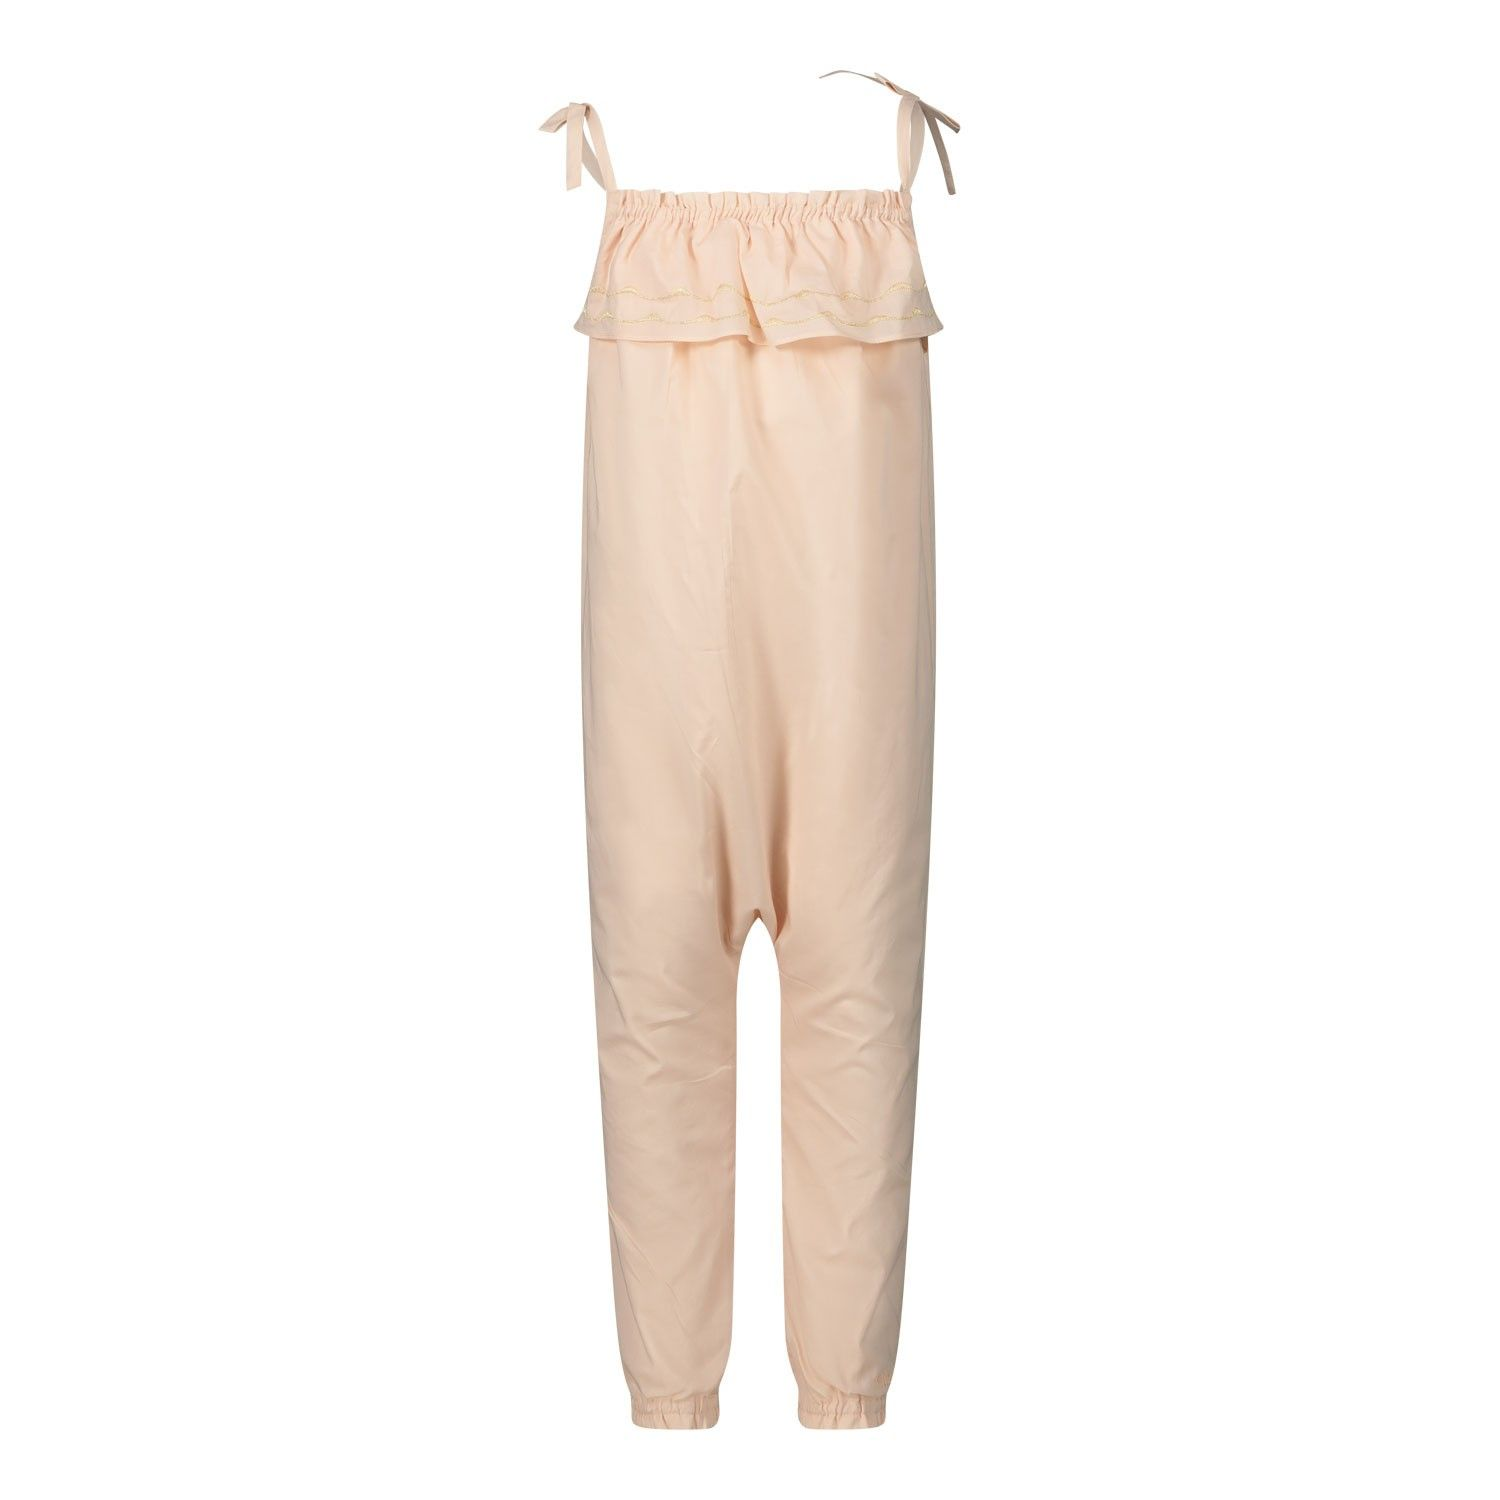 Picture of Chloé C04166 baby jumpsuit salmon